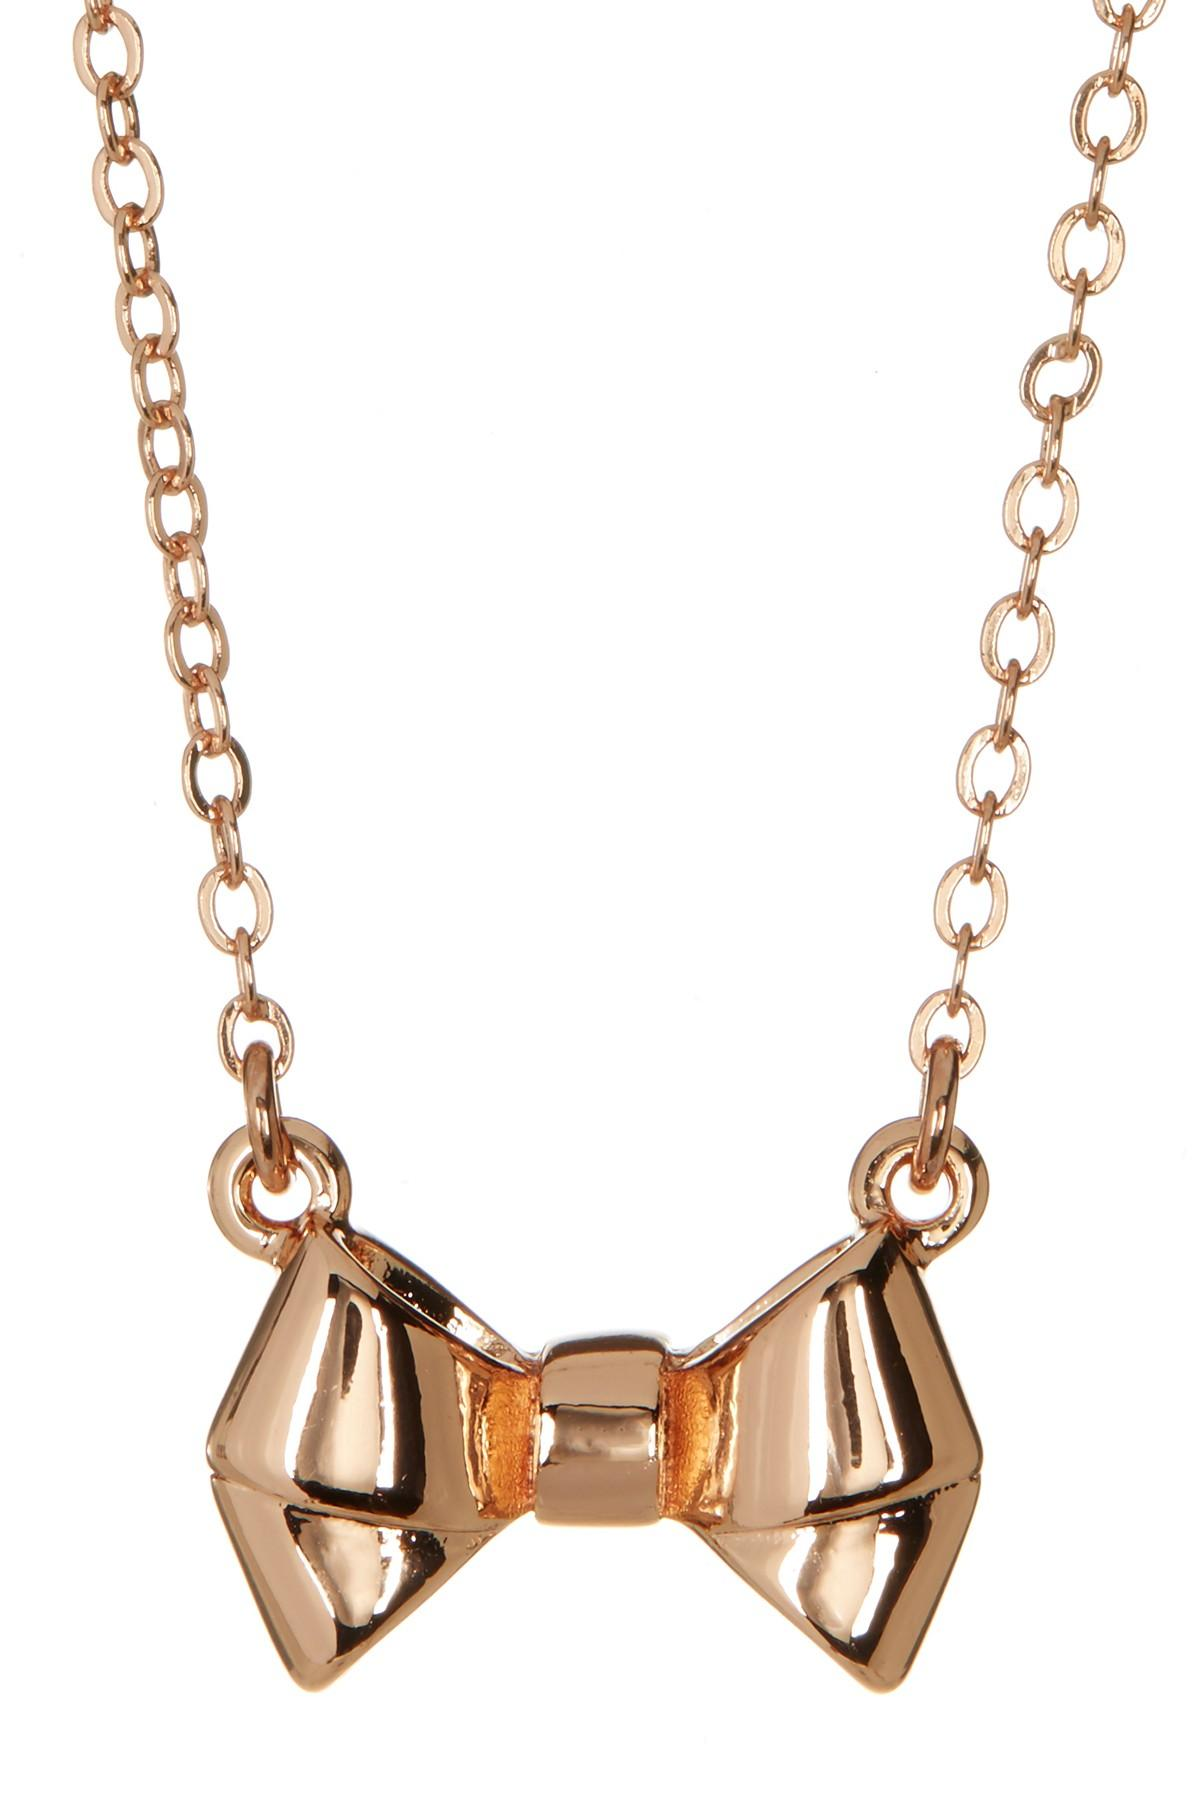 d63364a2fa8 Lyst - Ted Baker Baby Bow Pendant Necklace in Metallic